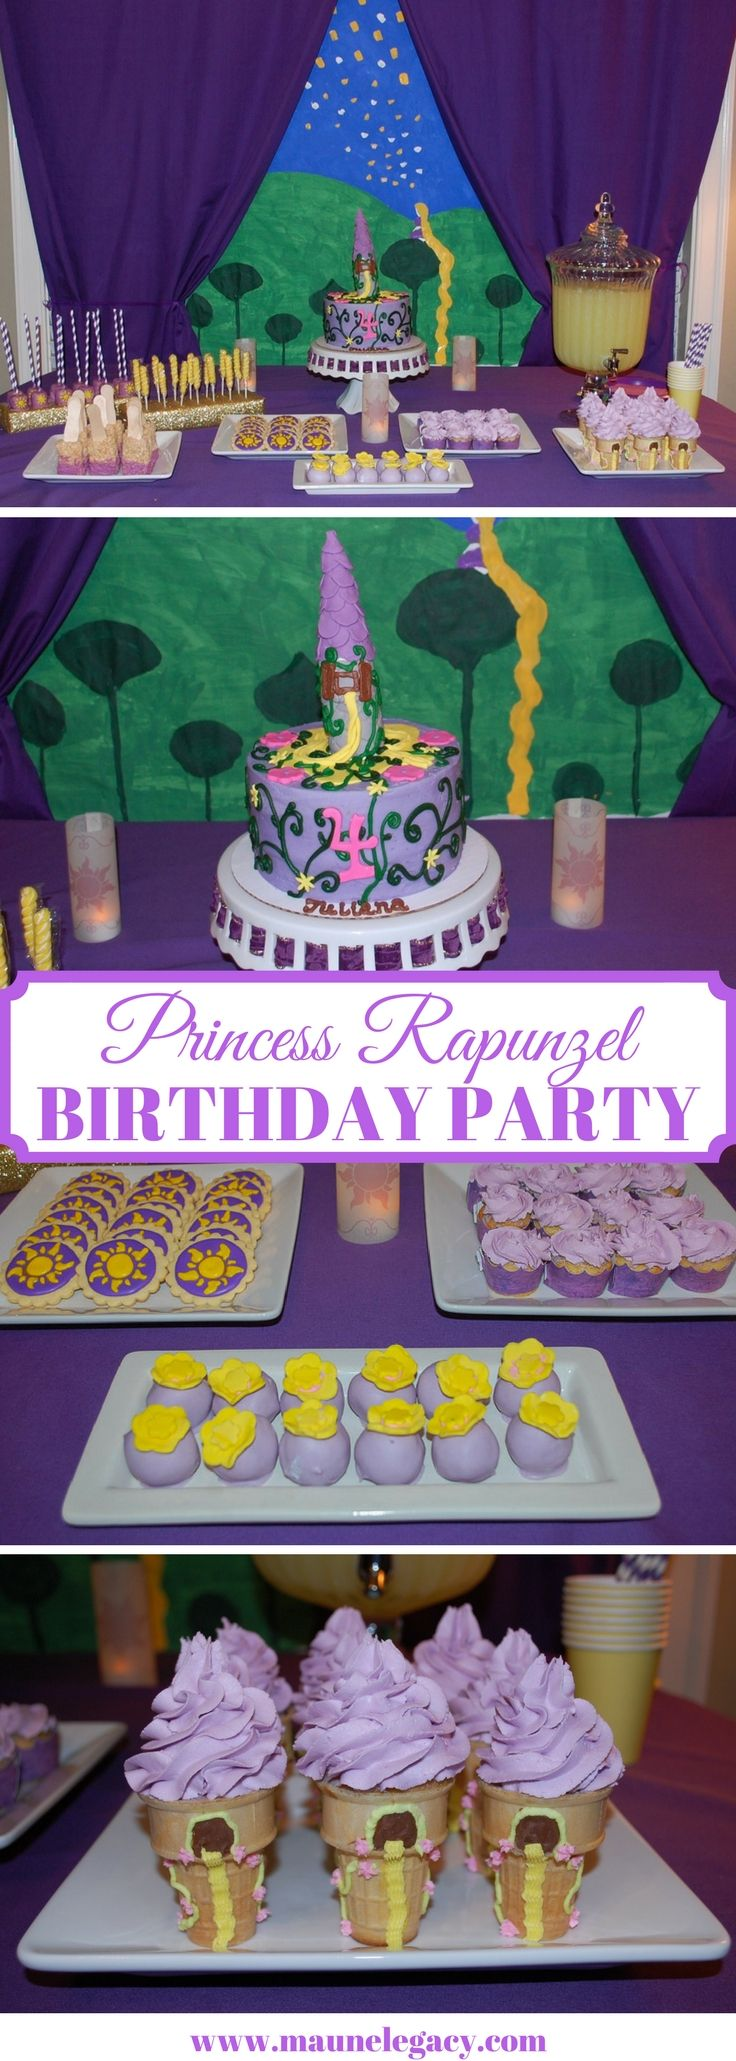 Princess Rapunzel Birthday Party is a perfect party theme for a Disney loving girl. Special guest Princess Rapunzel was on hand to sing songs and dance with the girls while they enjoyed yummy Tangled themed treats.